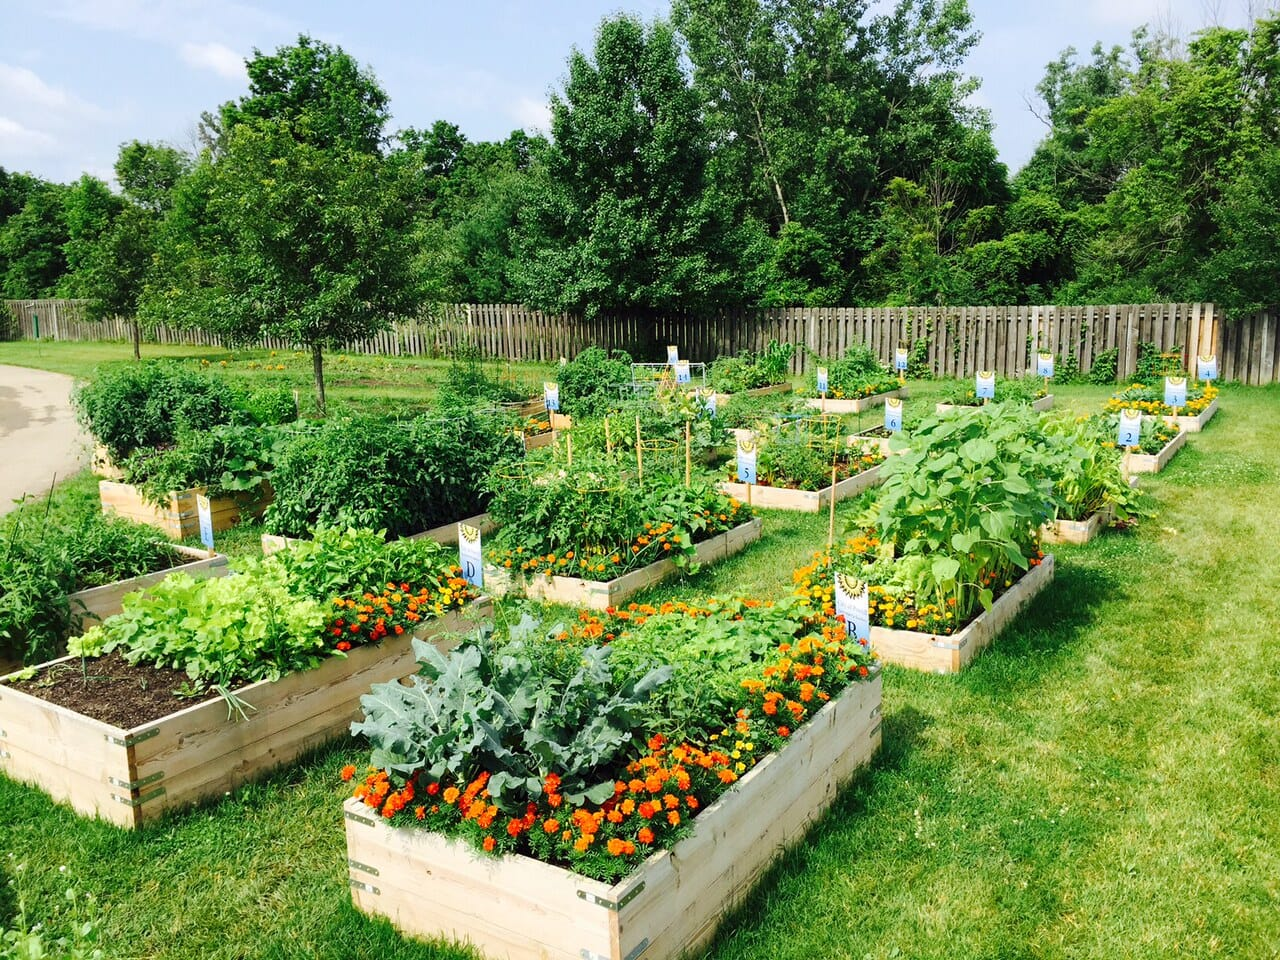 Design A House Online For Free Community Garden City Of Powell Powell Ohio